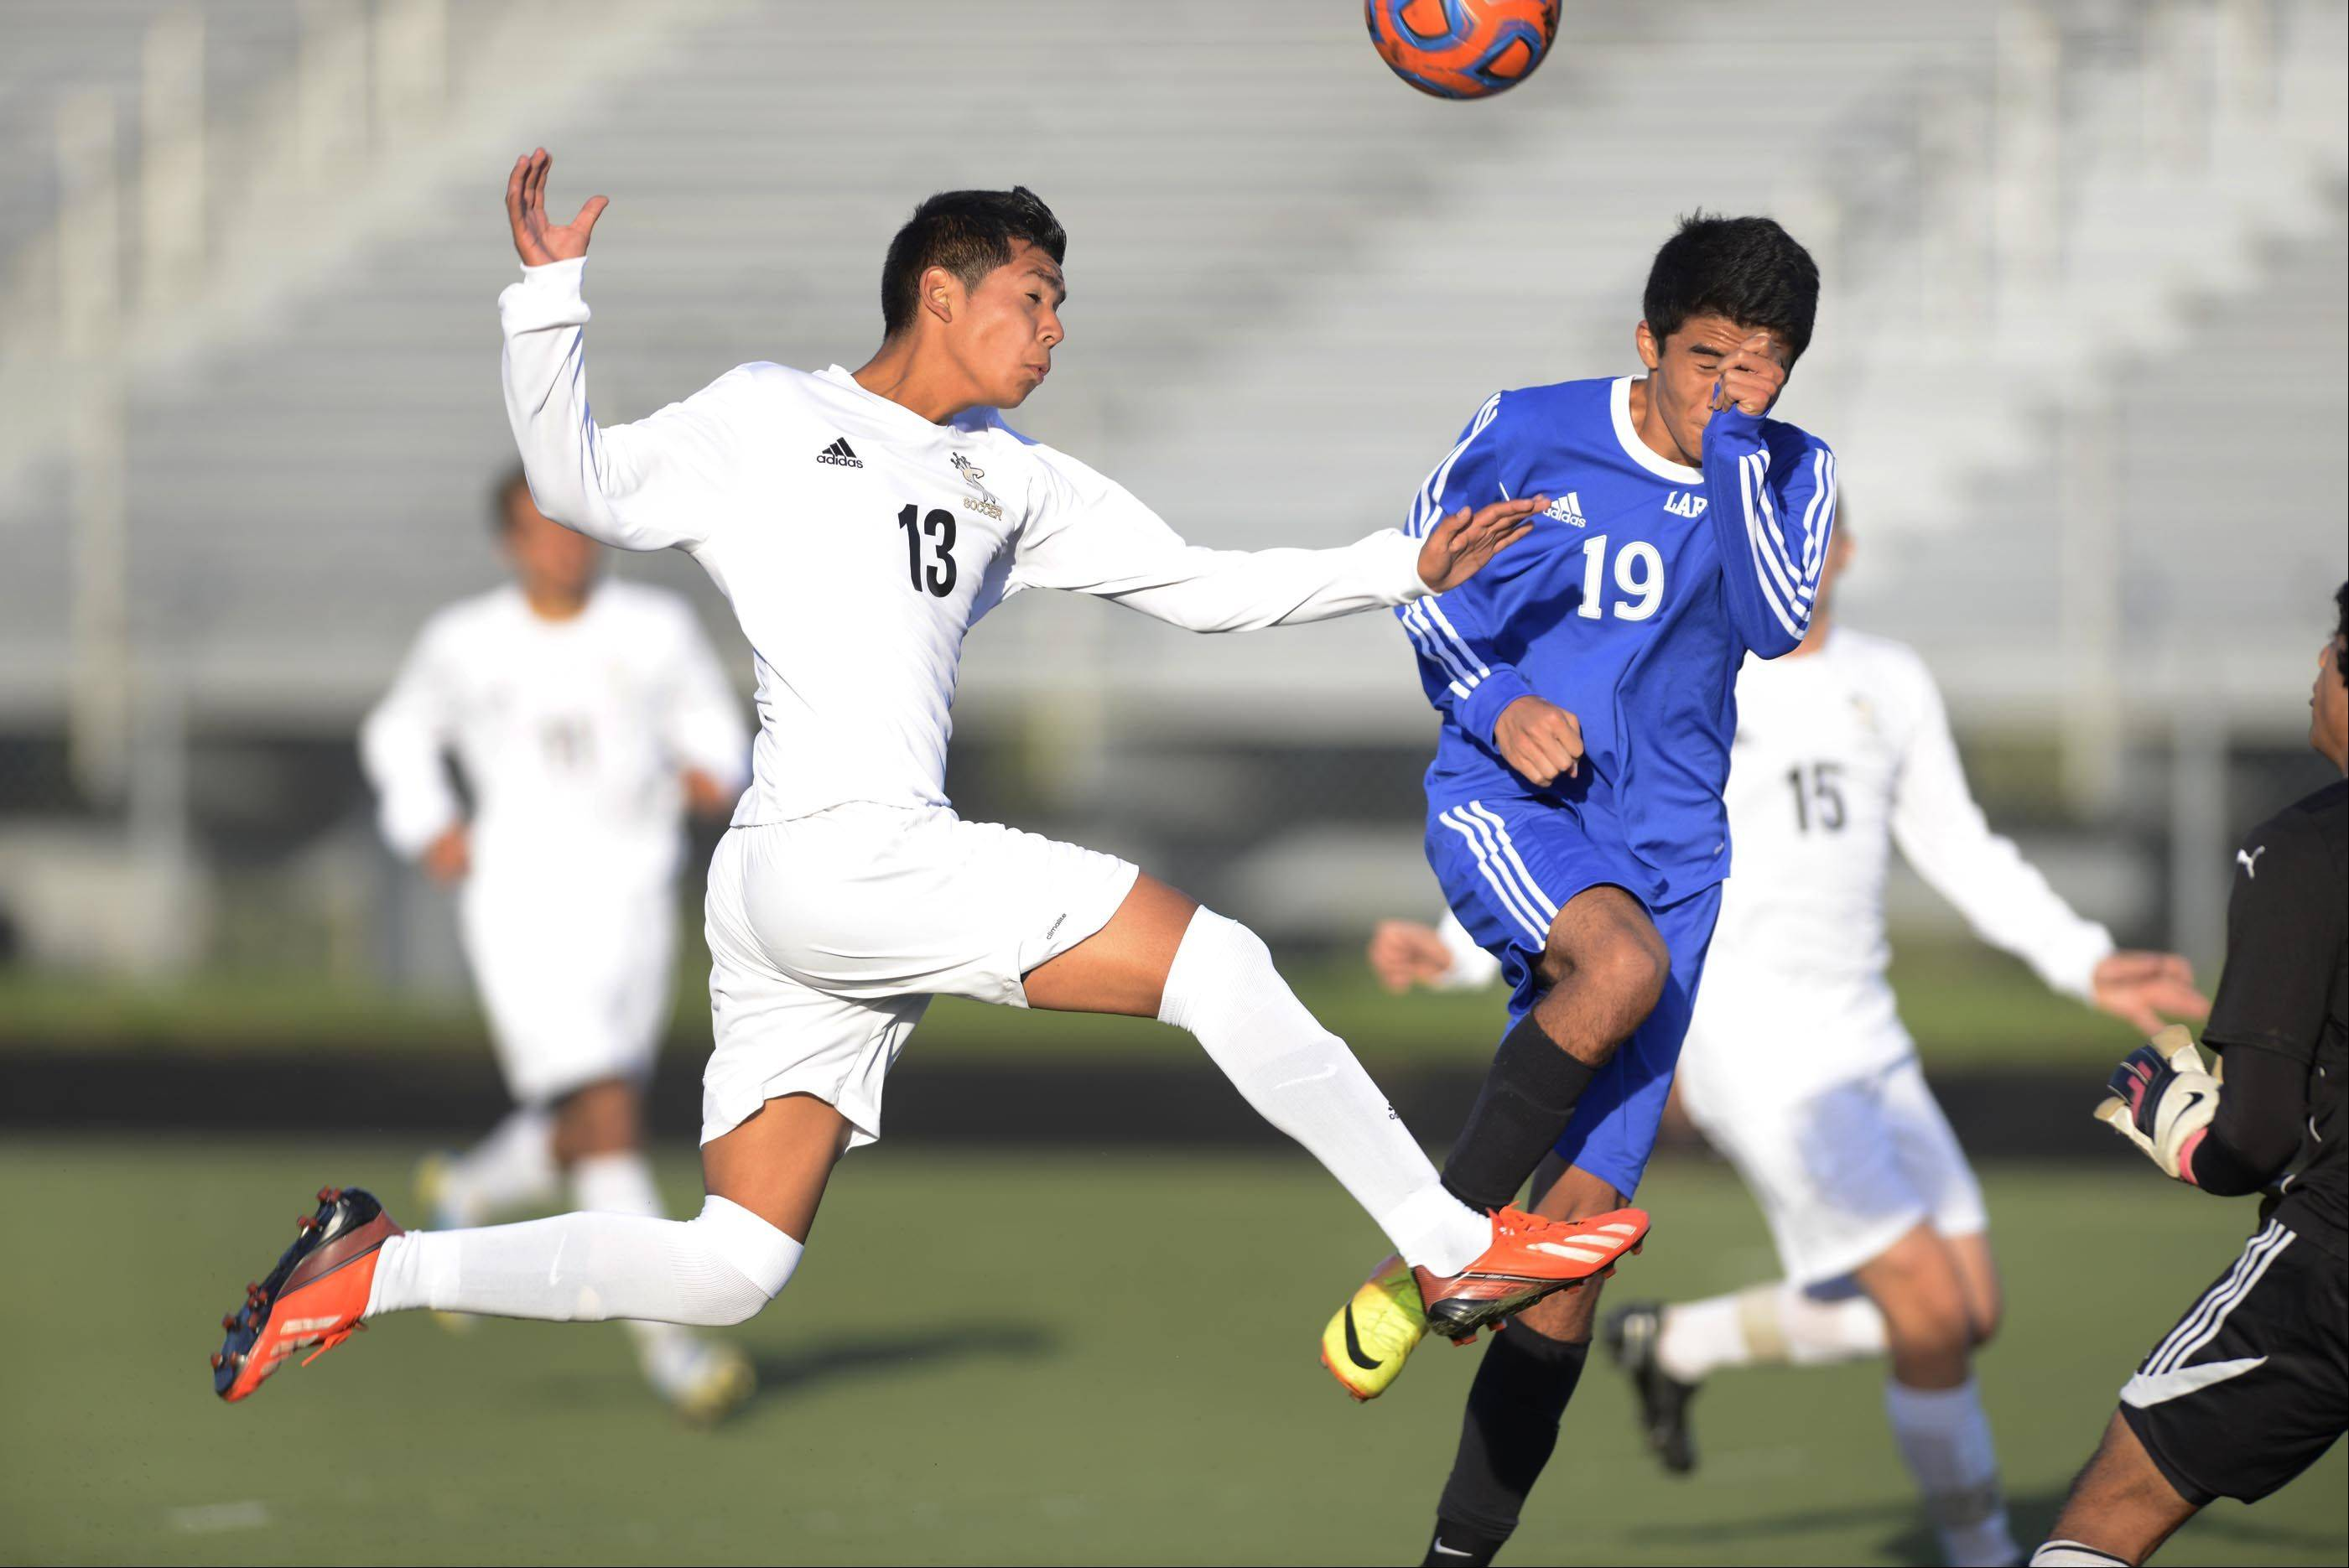 Streamwood's Donnie Sosa and Larkin's Diego Ramirez, right, compete for a corner kick Monday in Streamwood.